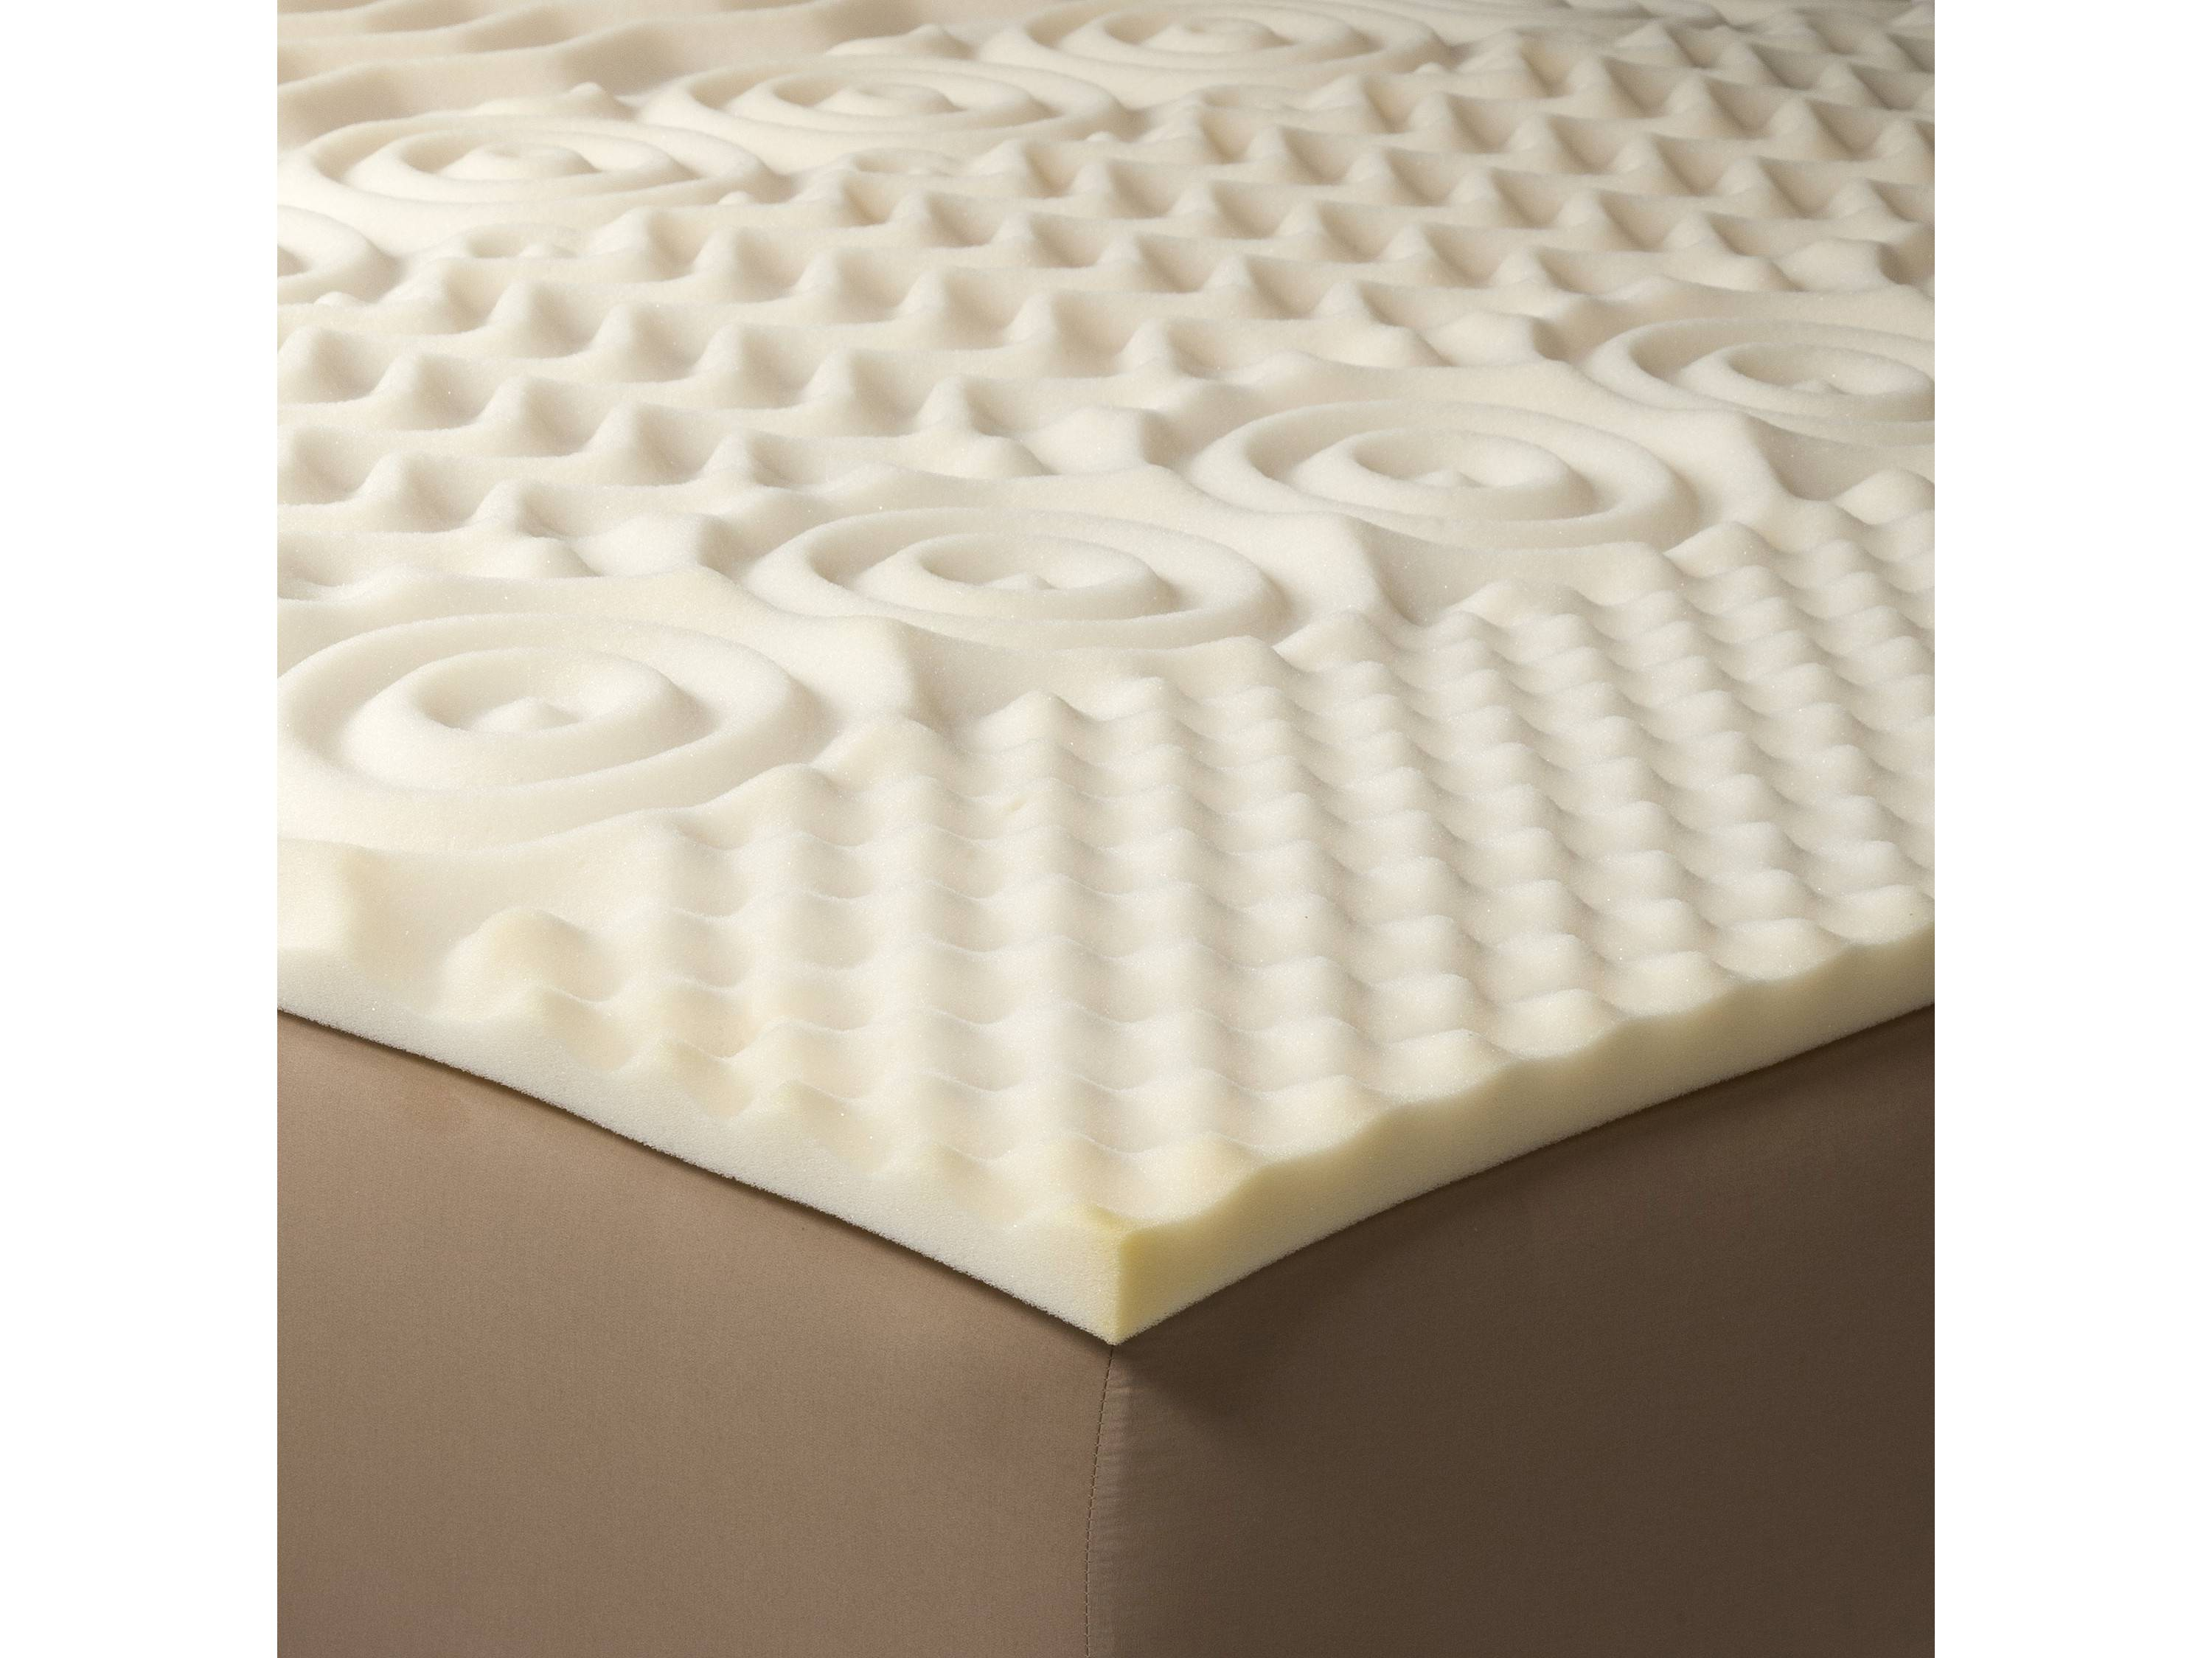 toppers canada inch home bedroom memory accessories topper for bedding pads pad covers mattress spa protectors foam en n walmart sensations